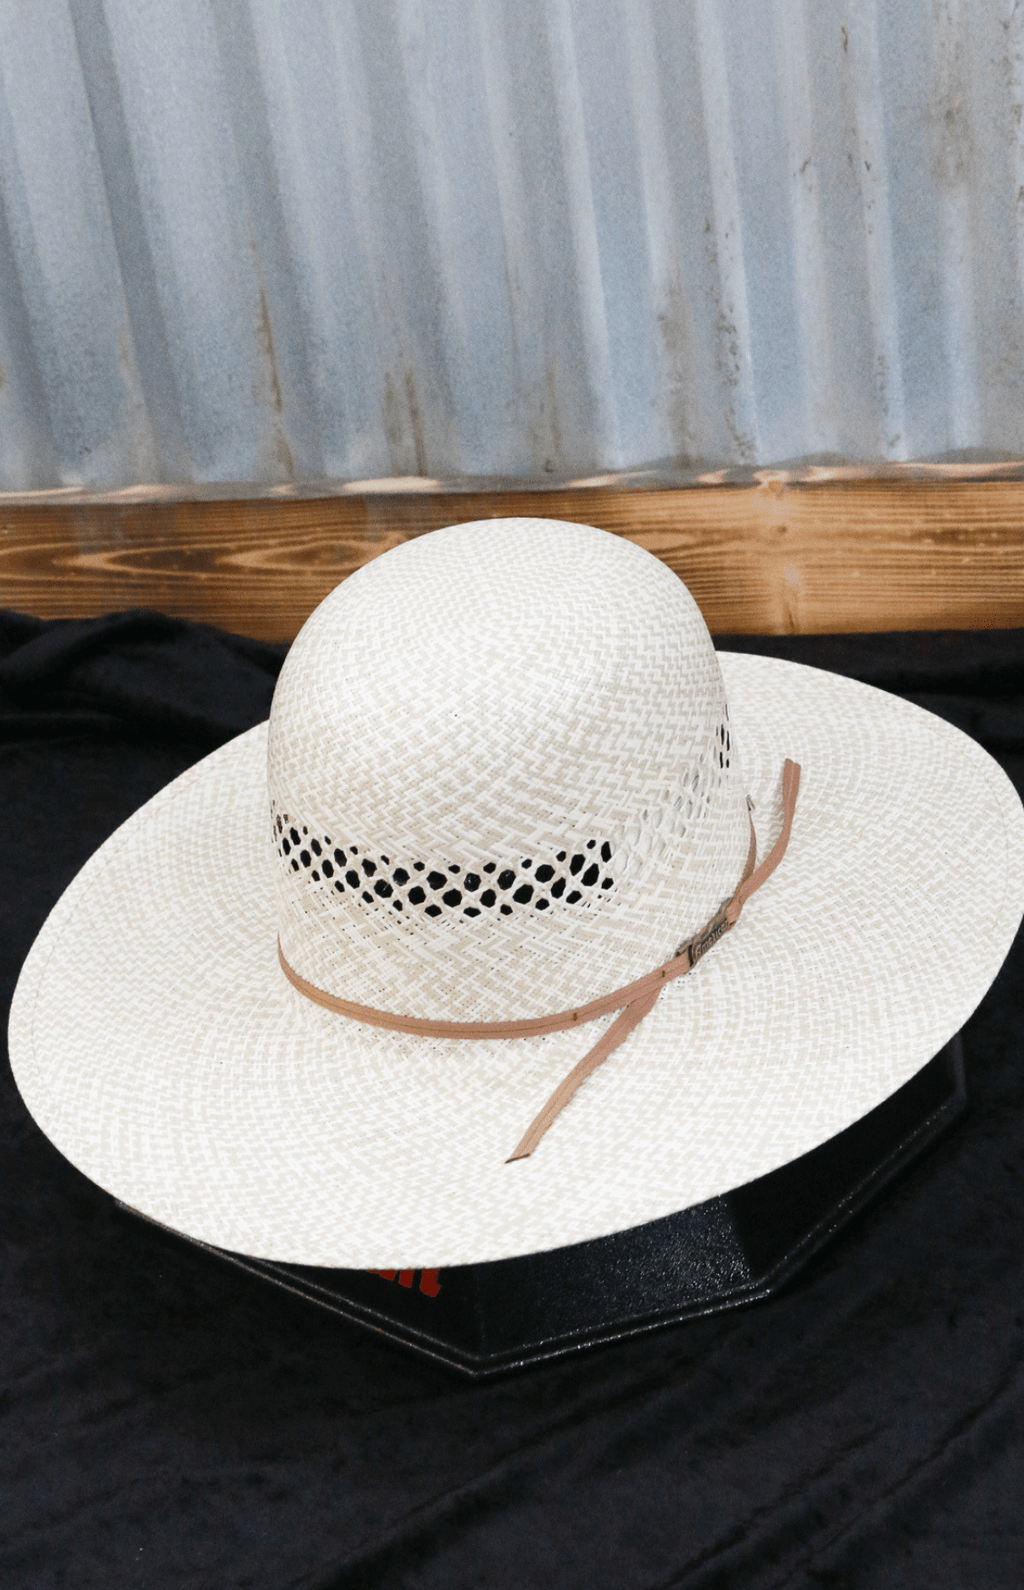 American Hat Co 6500 41/4 brim